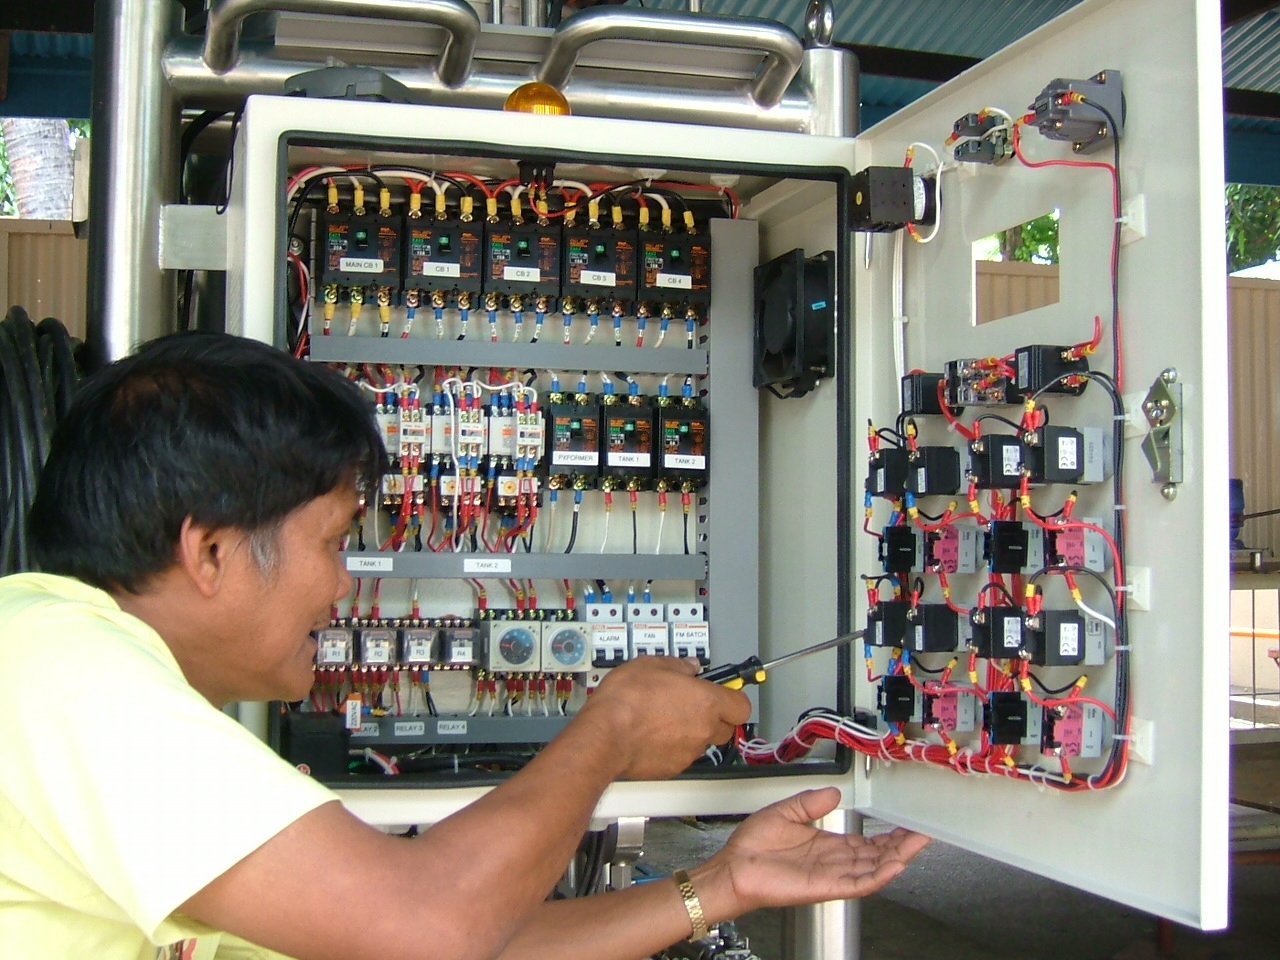 Technical Services Vending Machine Wiring Diagram Electrical Designtimestamp1243964318012